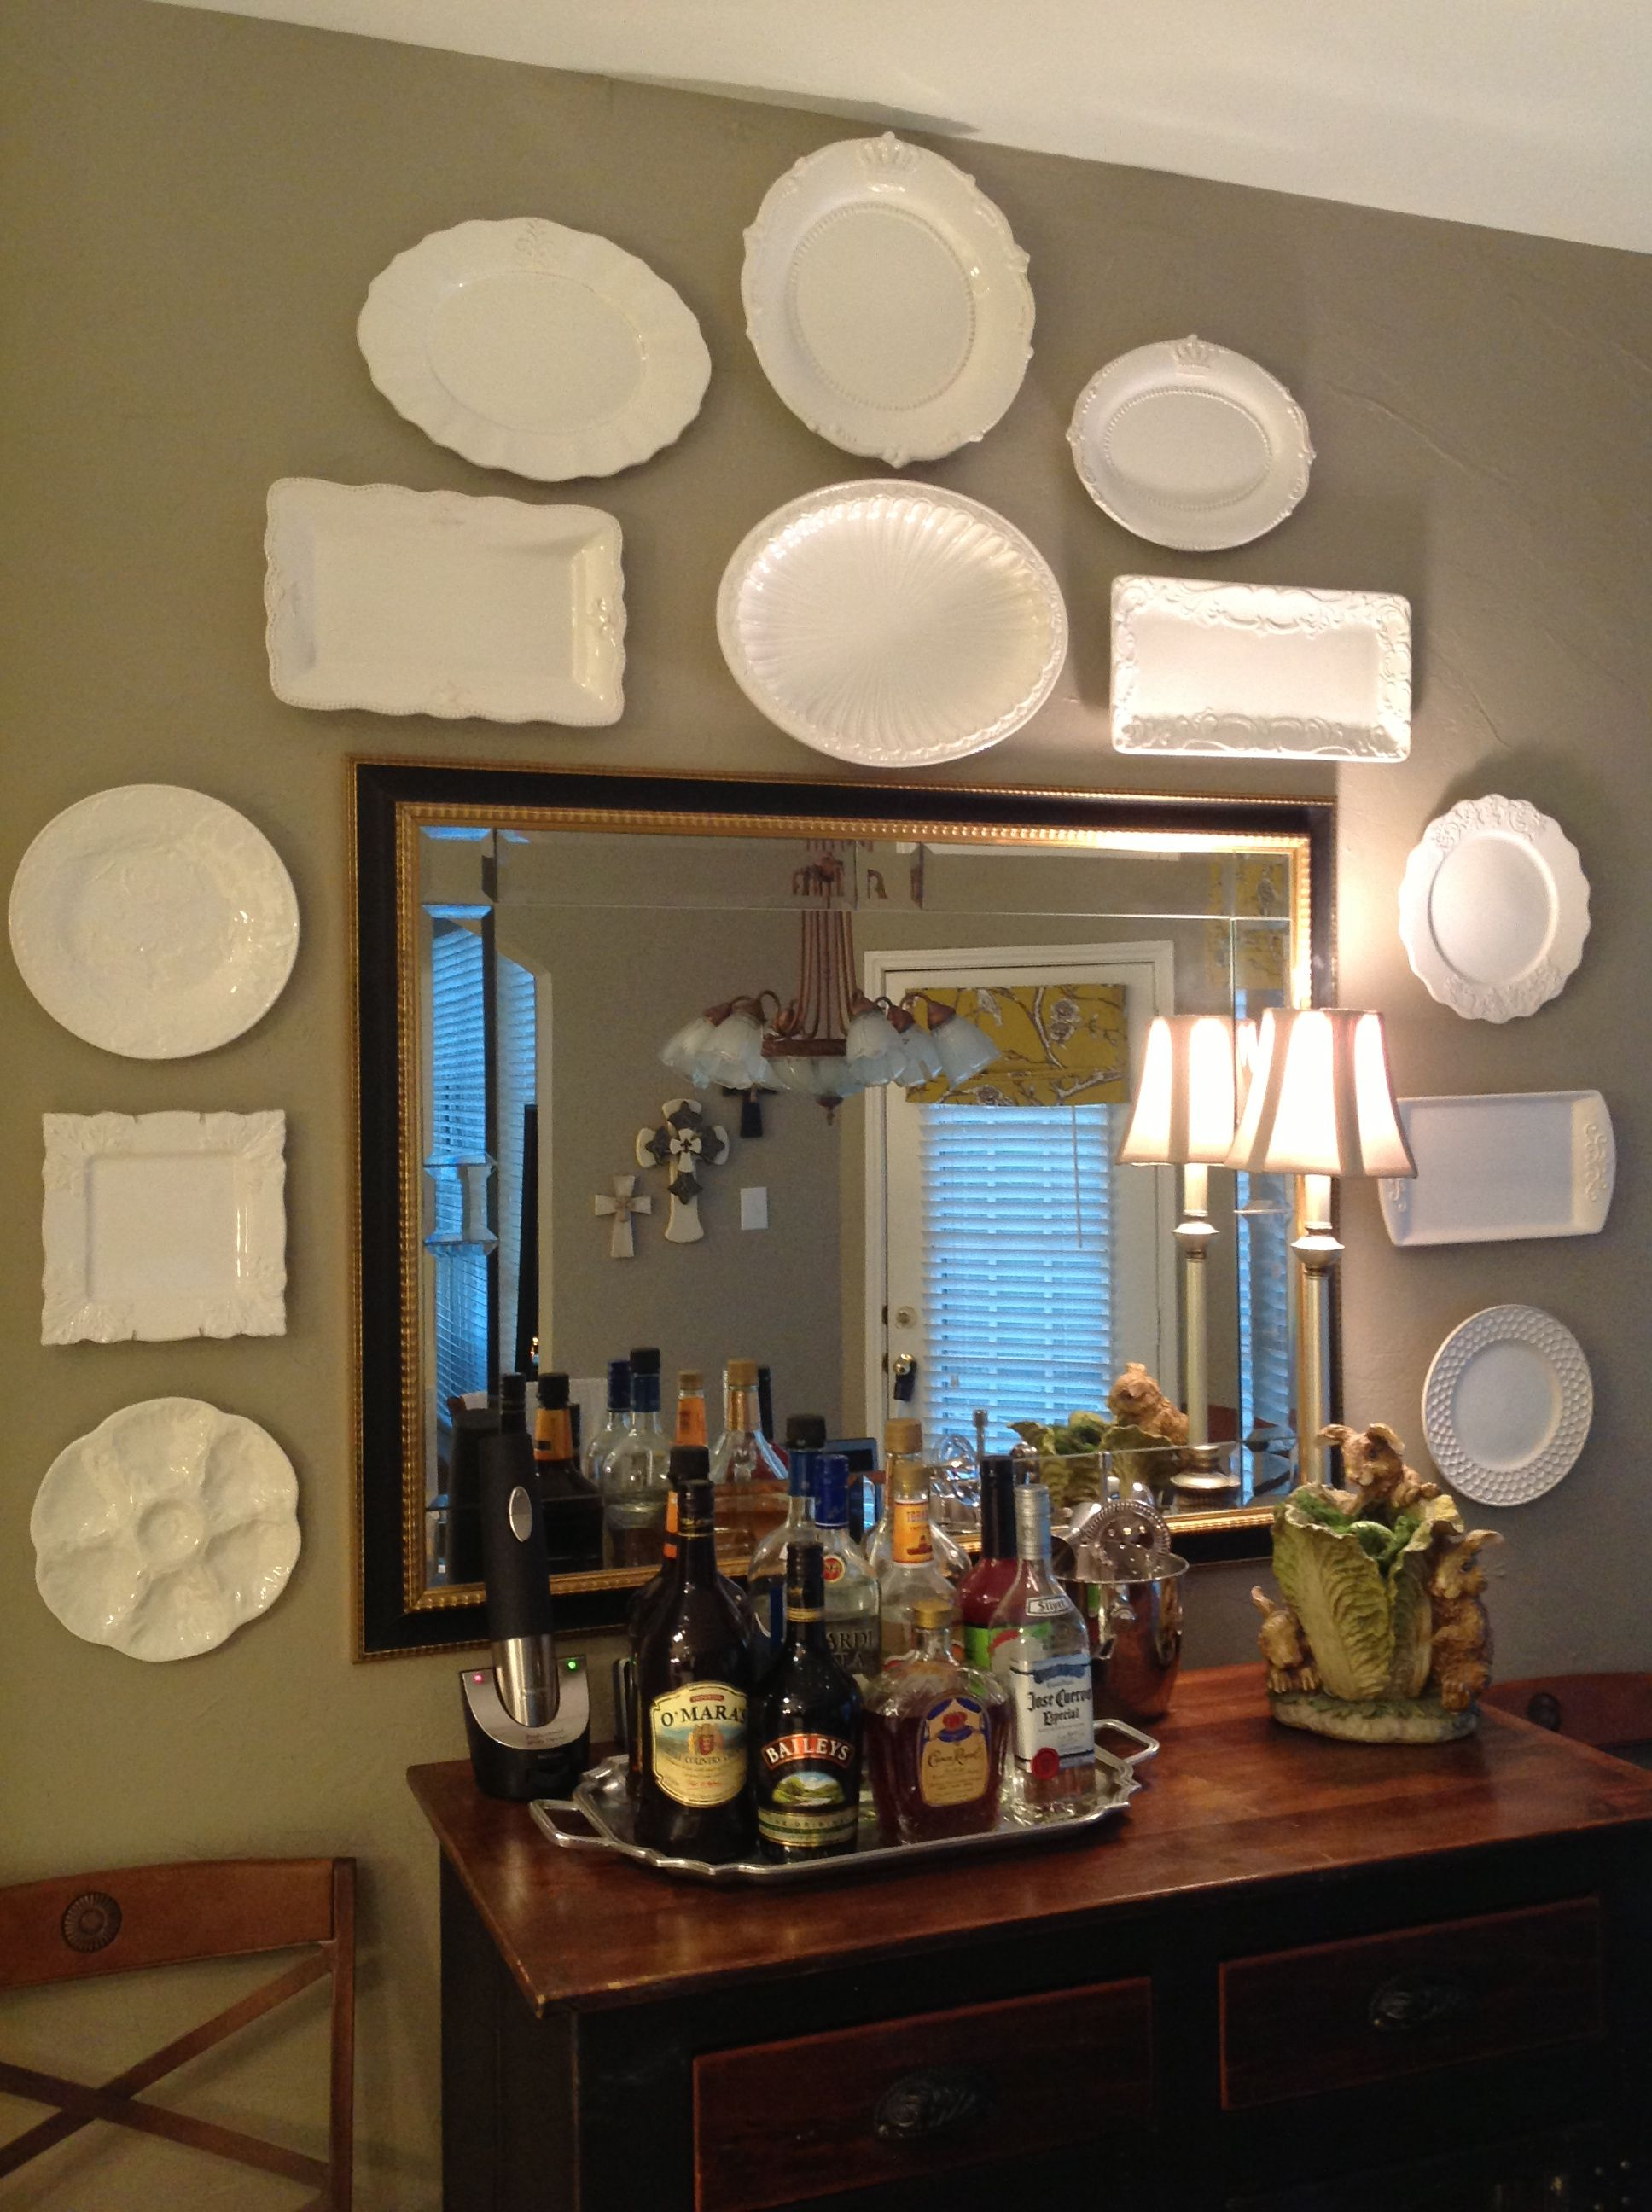 White plate wall decor. Hung with Invisible English Disc Plate Hangers. & White plate wall decor. Hung with Invisible English Disc Plate ...